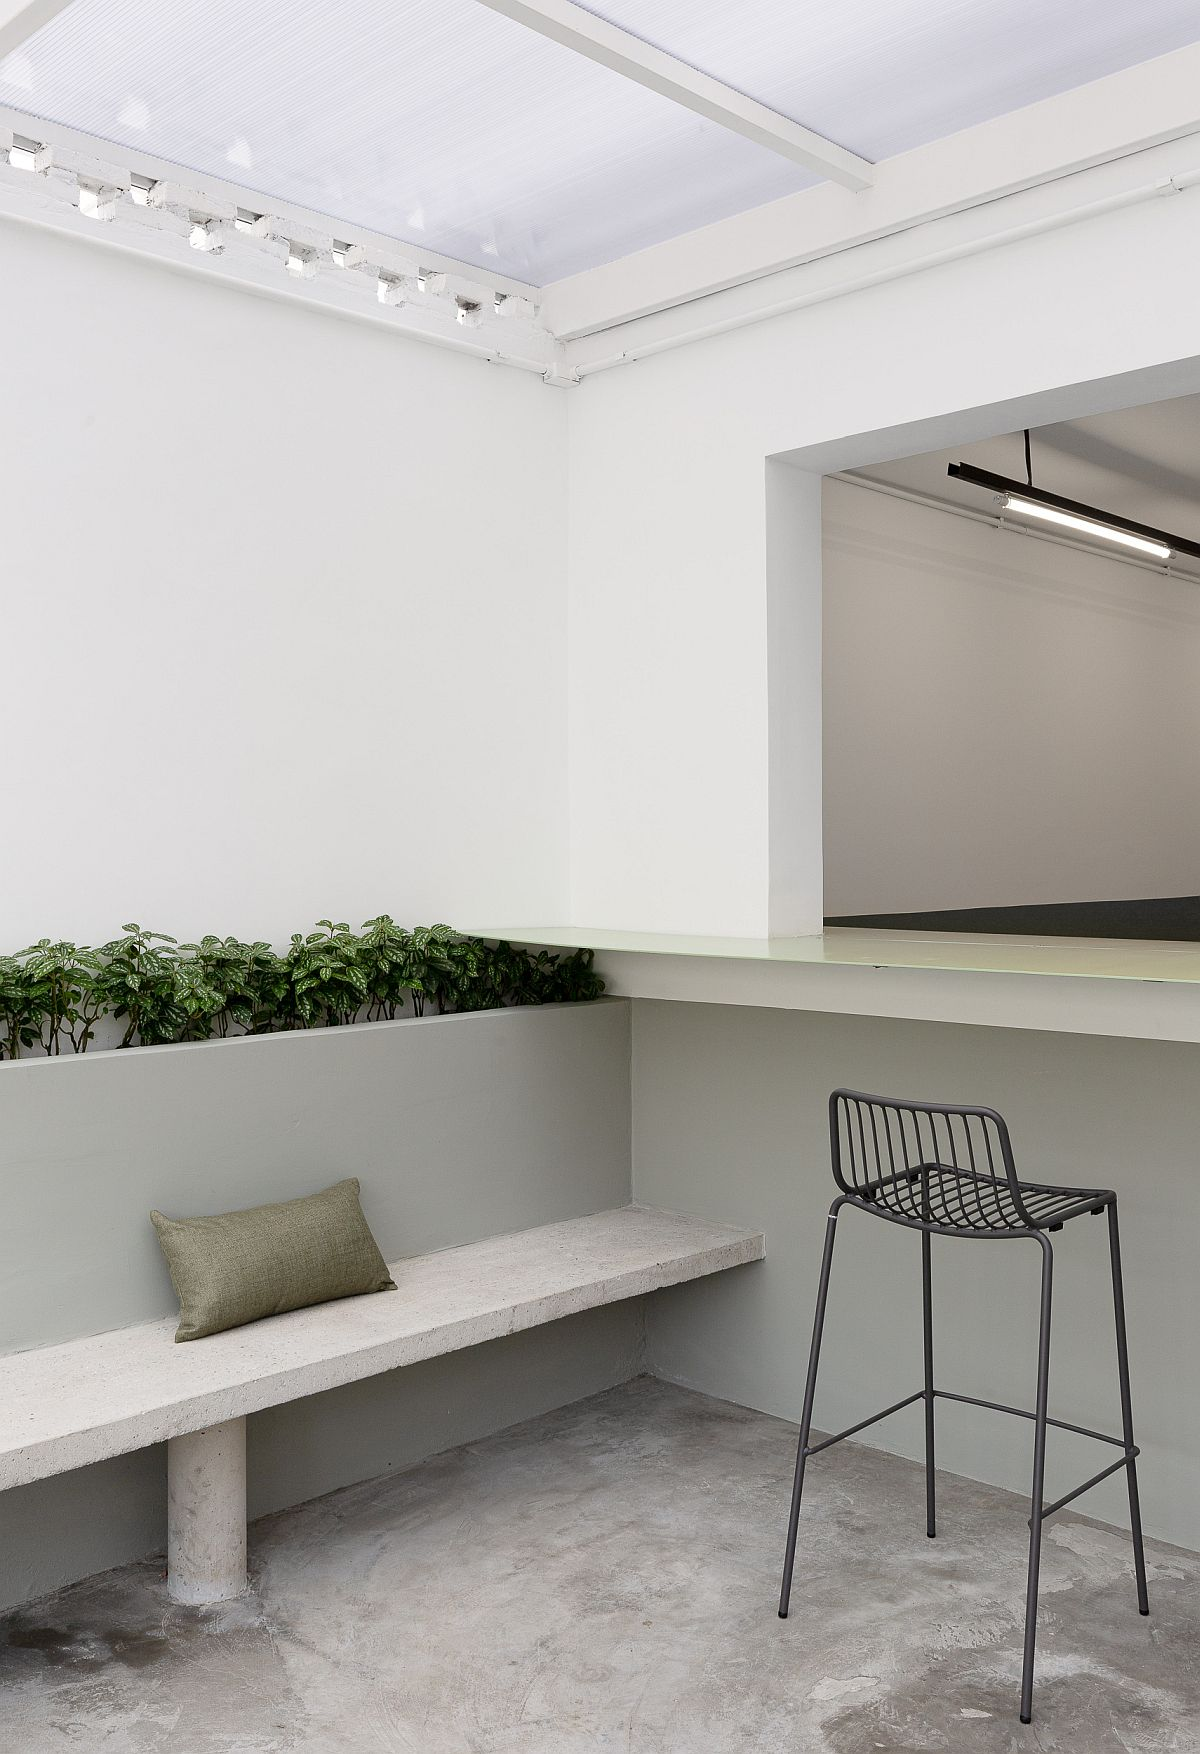 Natural light and greenery bring freshness to the restaurant interior